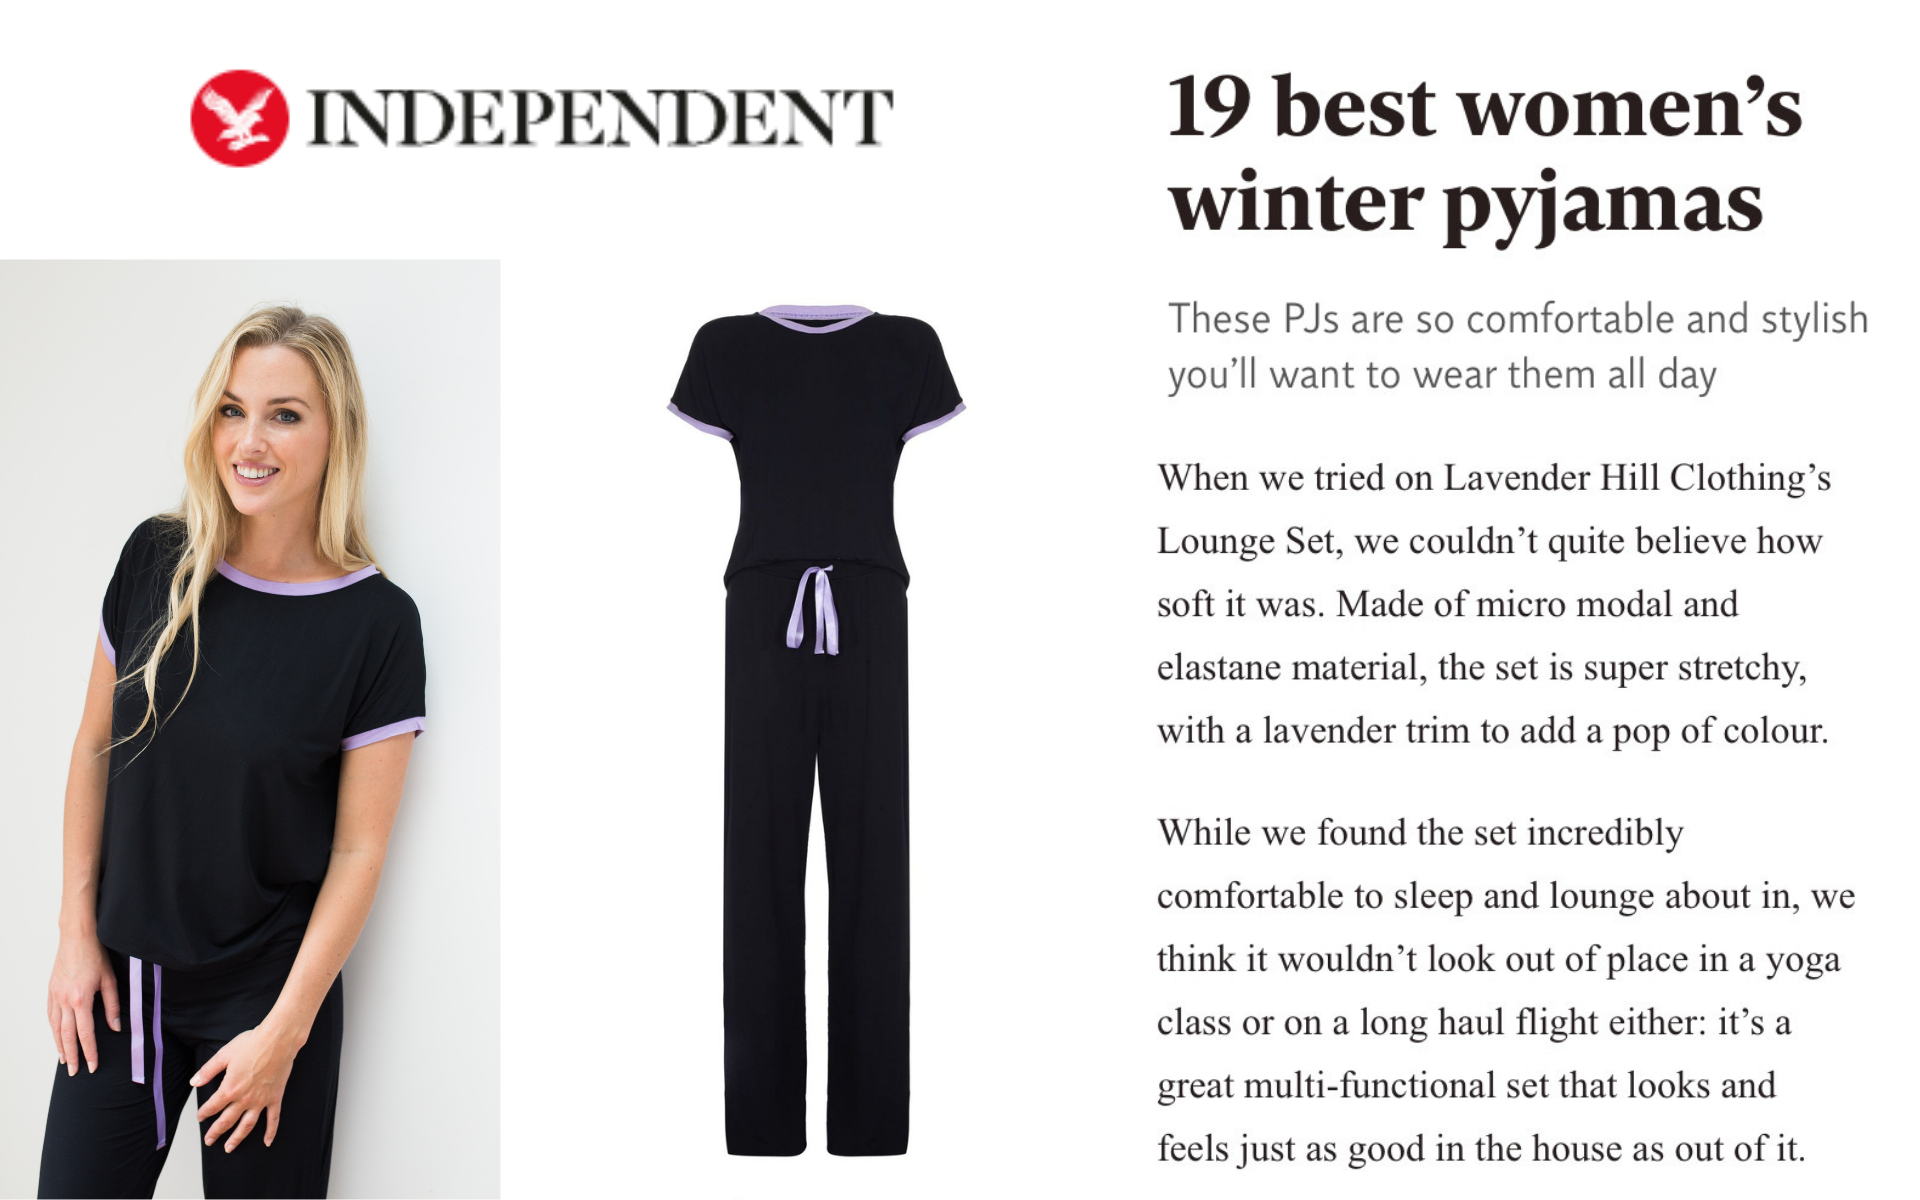 Indy Best ladies pyjamas